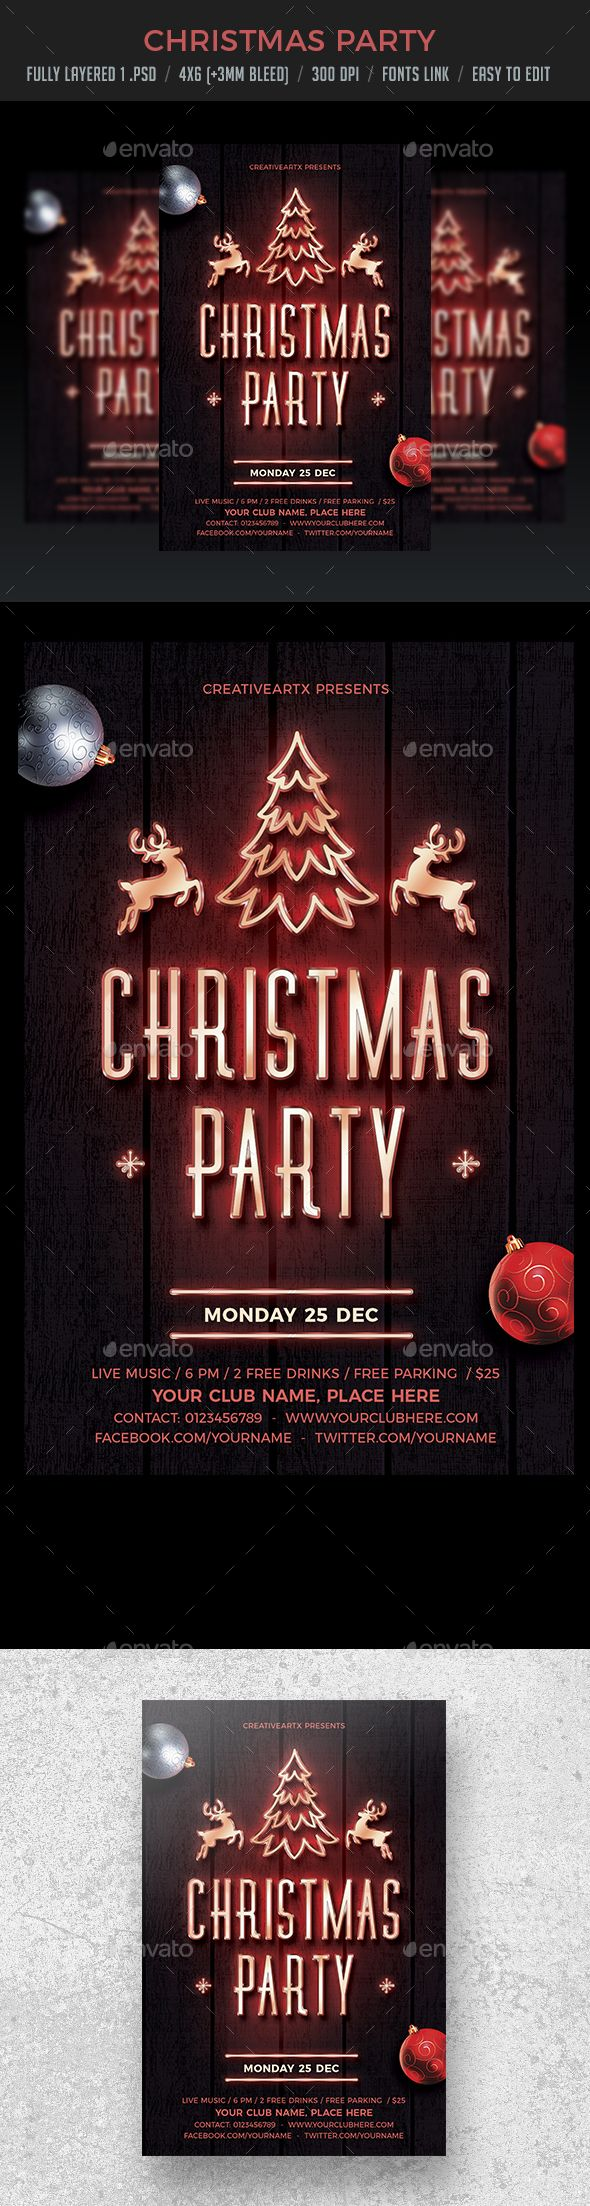 Christmas Party Neon Flyer | Neon, Party flyer and Event flyers